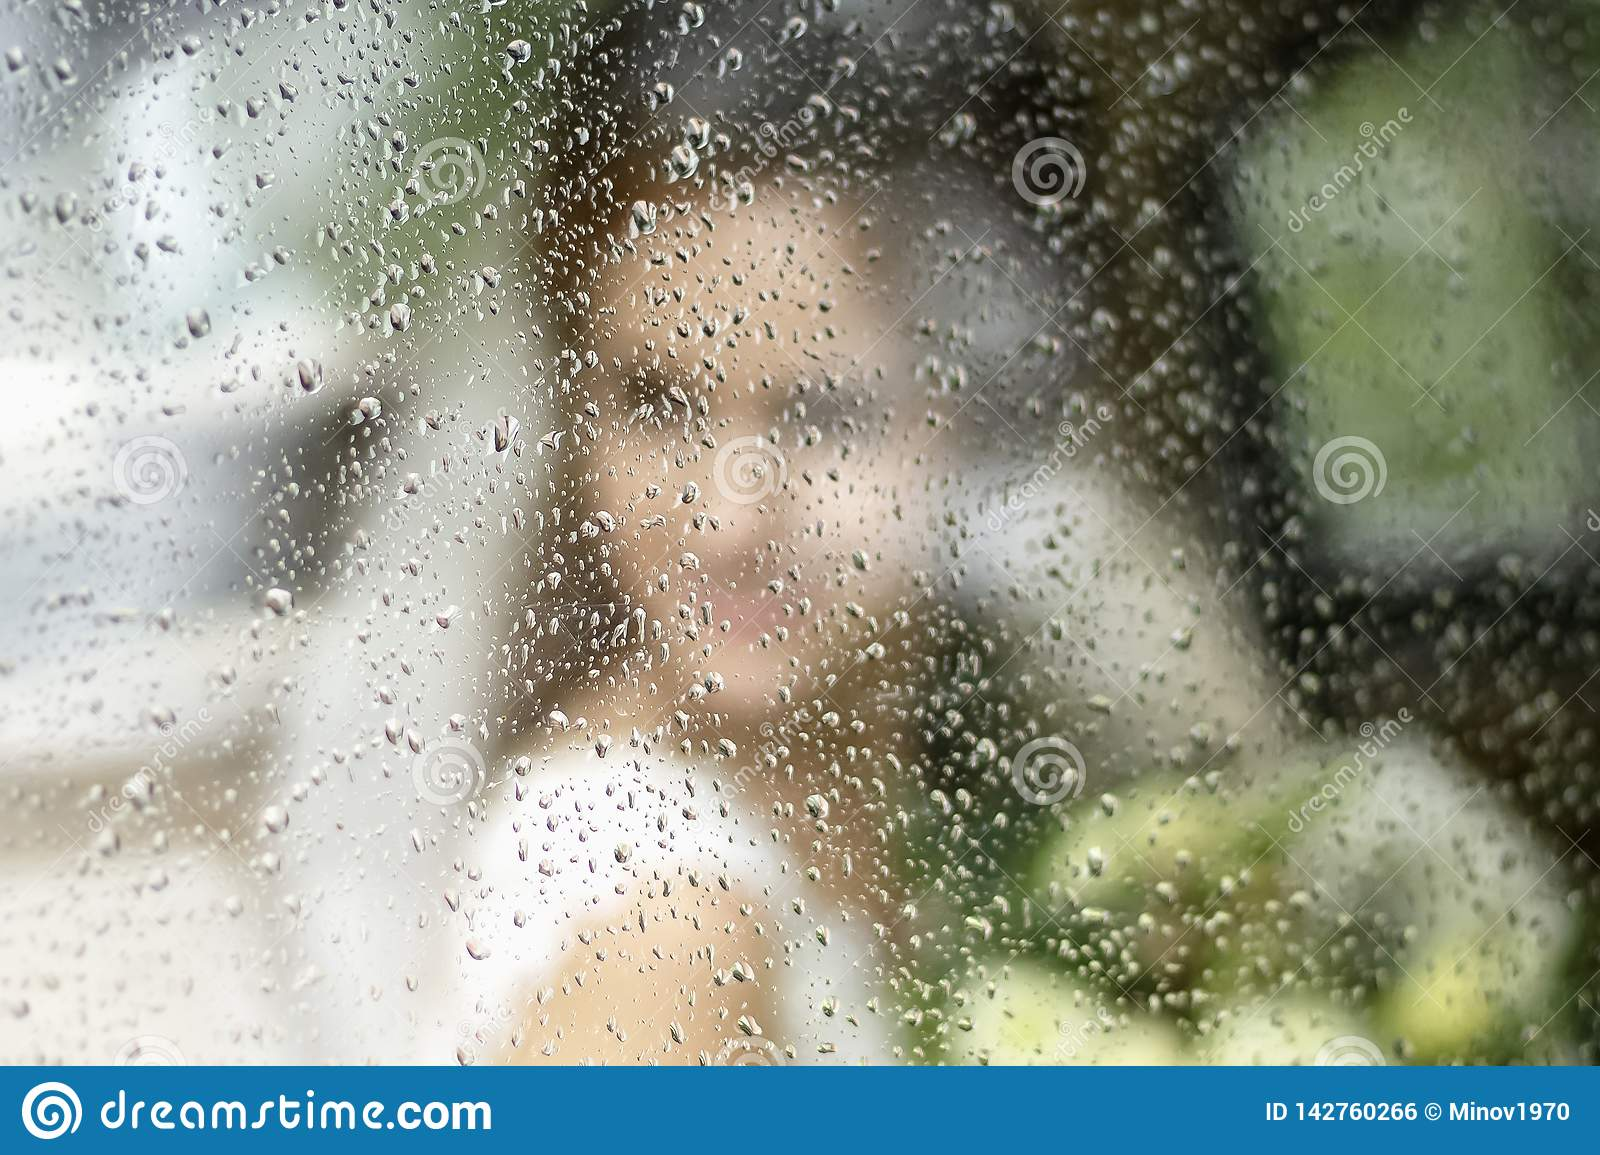 The brides silhouette in a wedding dress with a bouquet of flowers through glass in rain drops